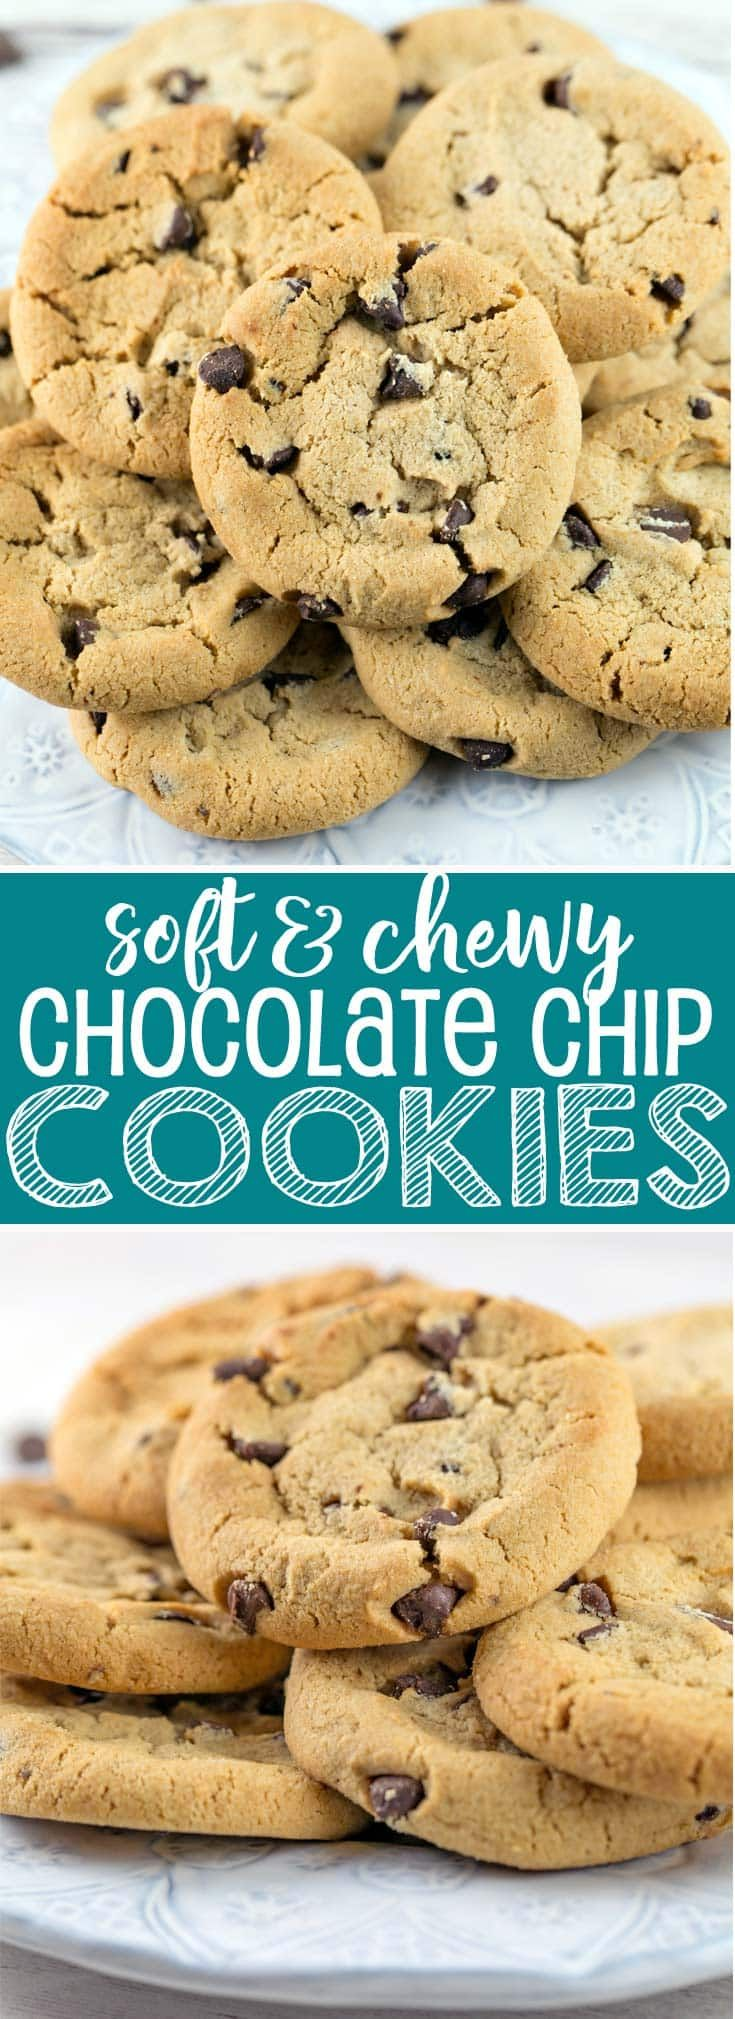 Best 25+ Easy chocolate chip cookies ideas on Pinterest ...